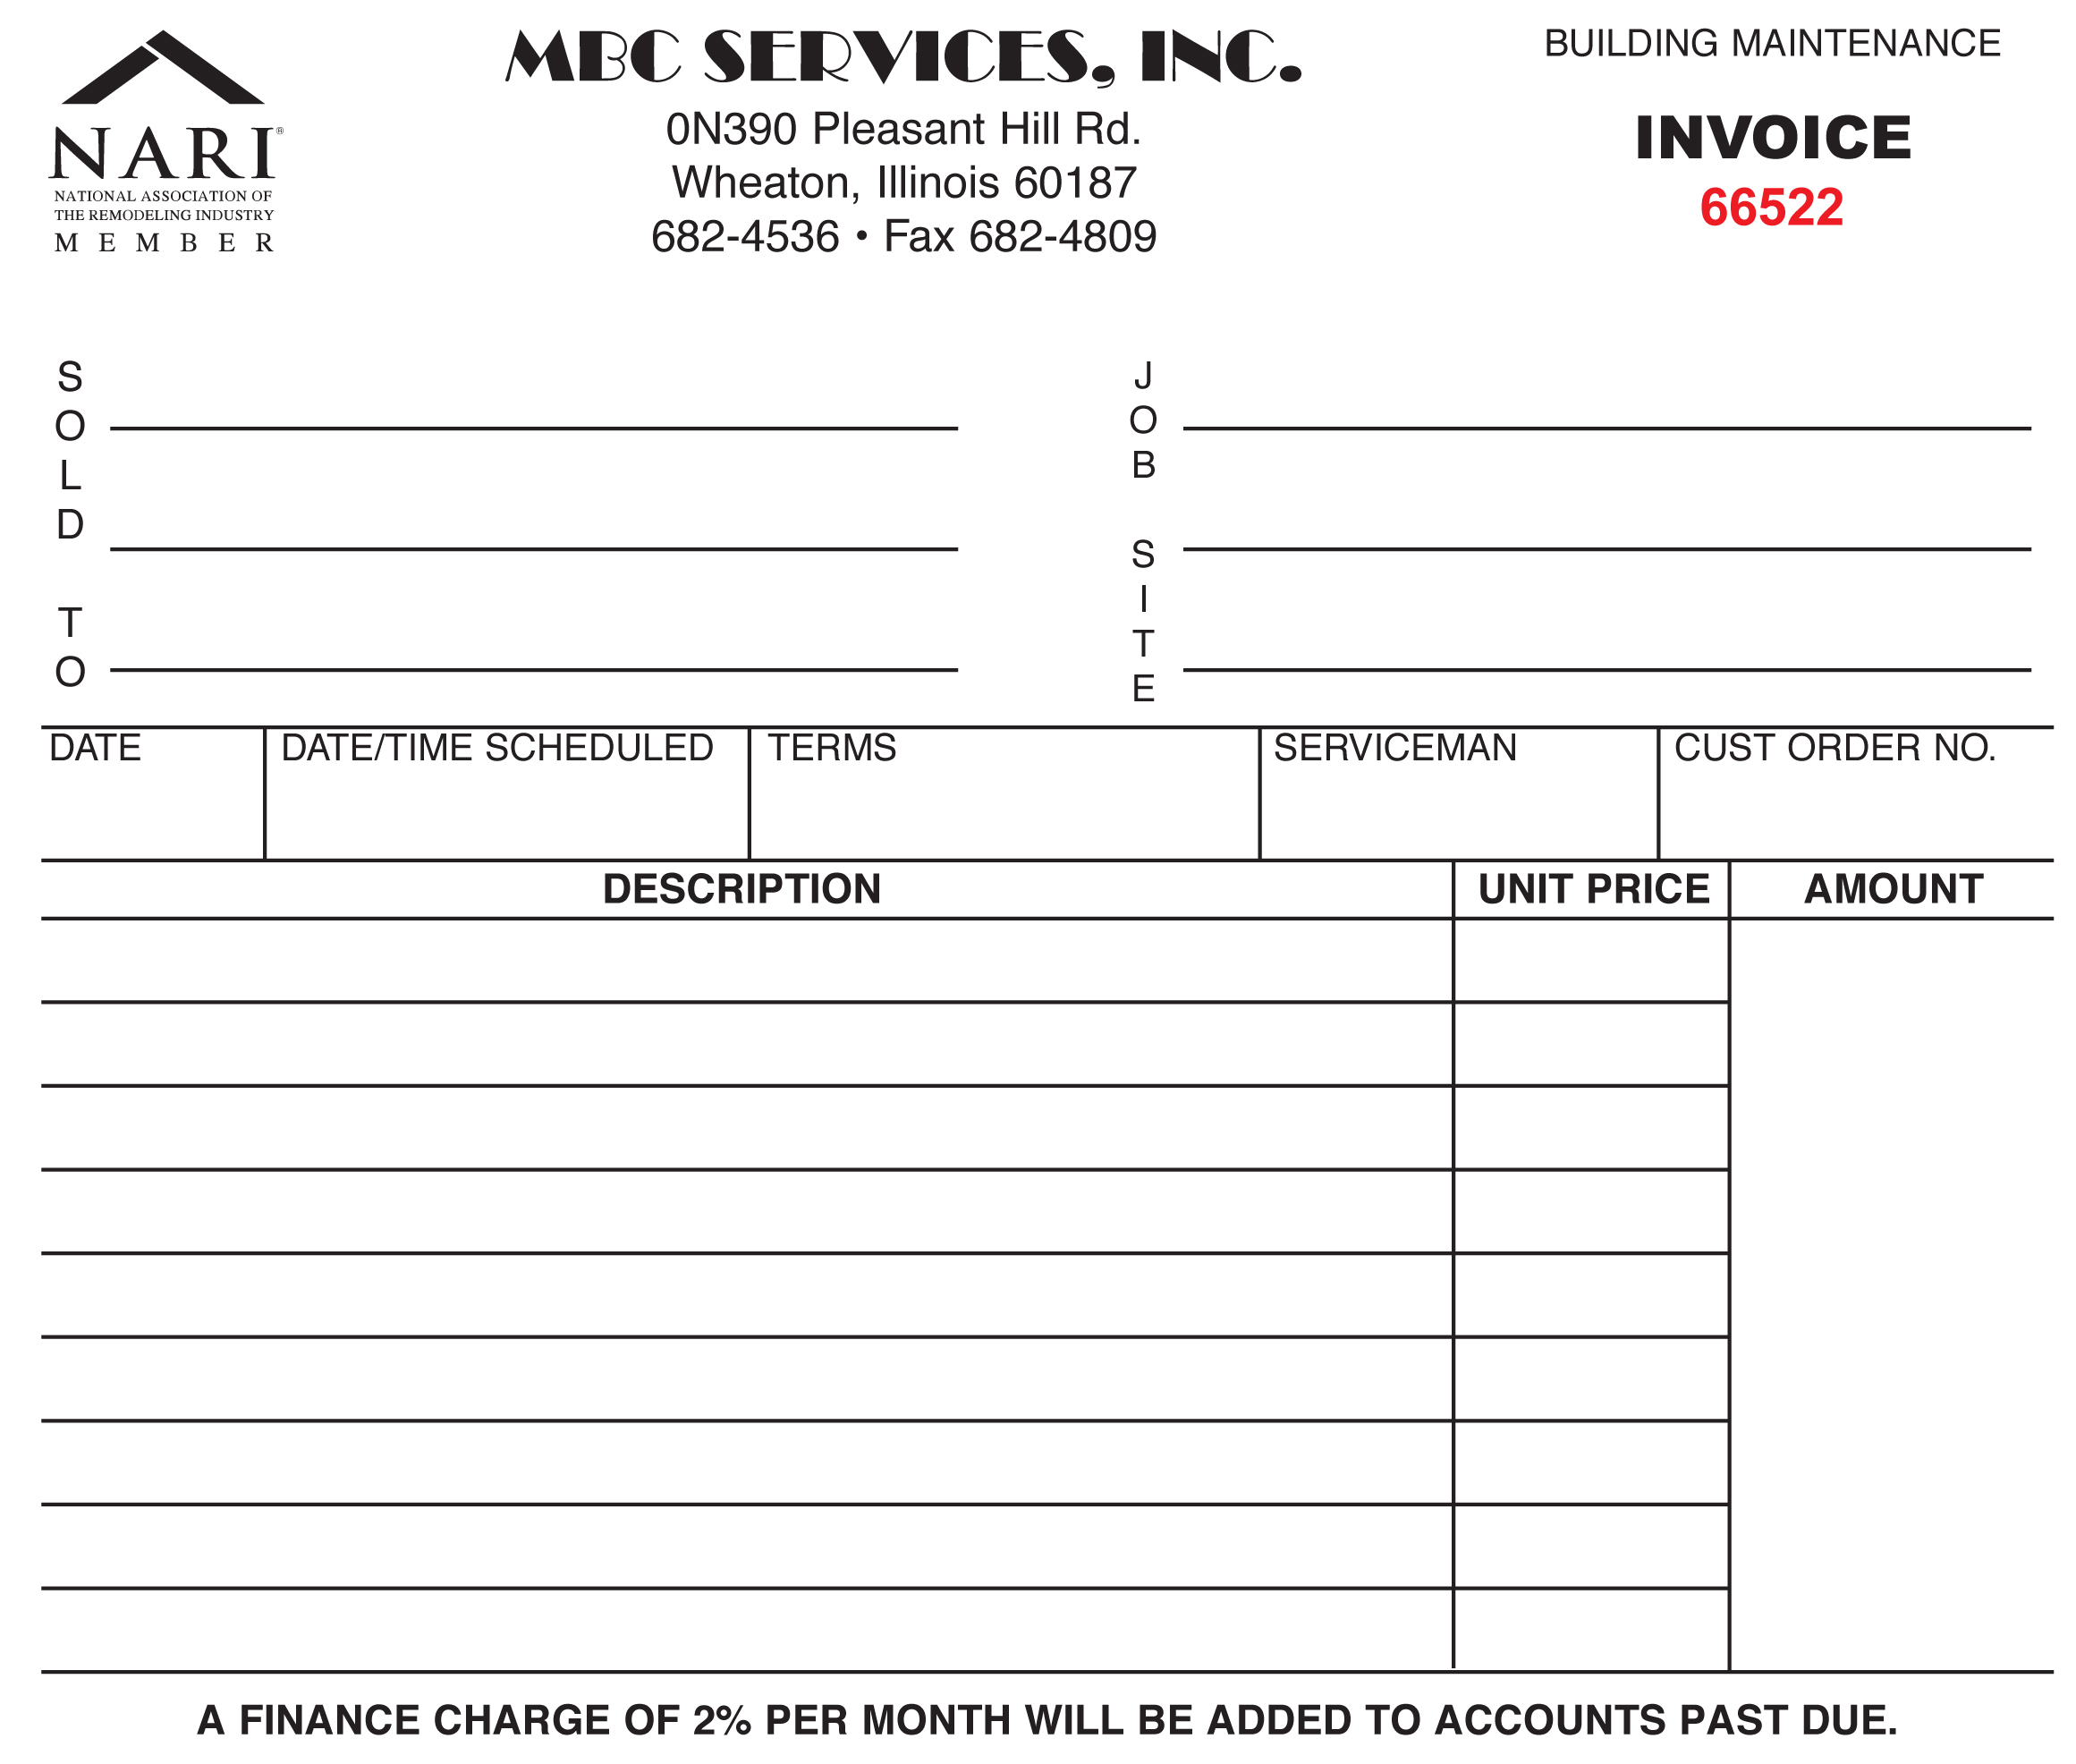 Invoice Form Printing Dream Ink Powerful Print Promotional And